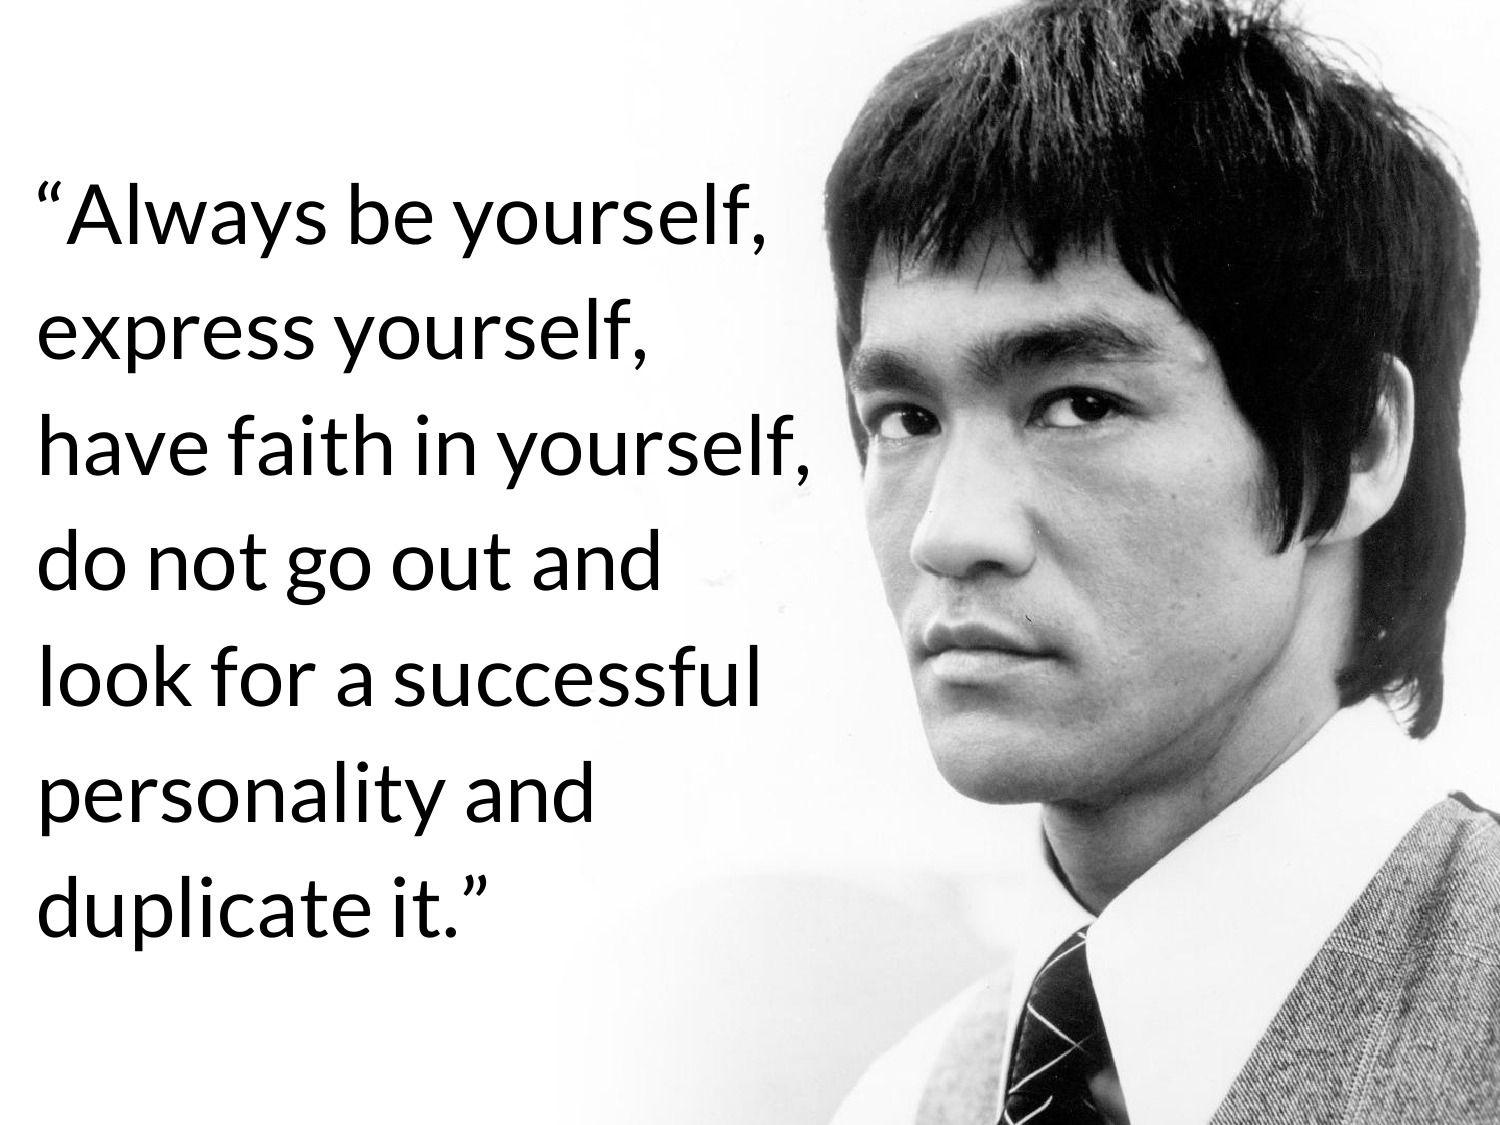 Bruce Lee Quotes Wallpapers - Wallpaper Cave